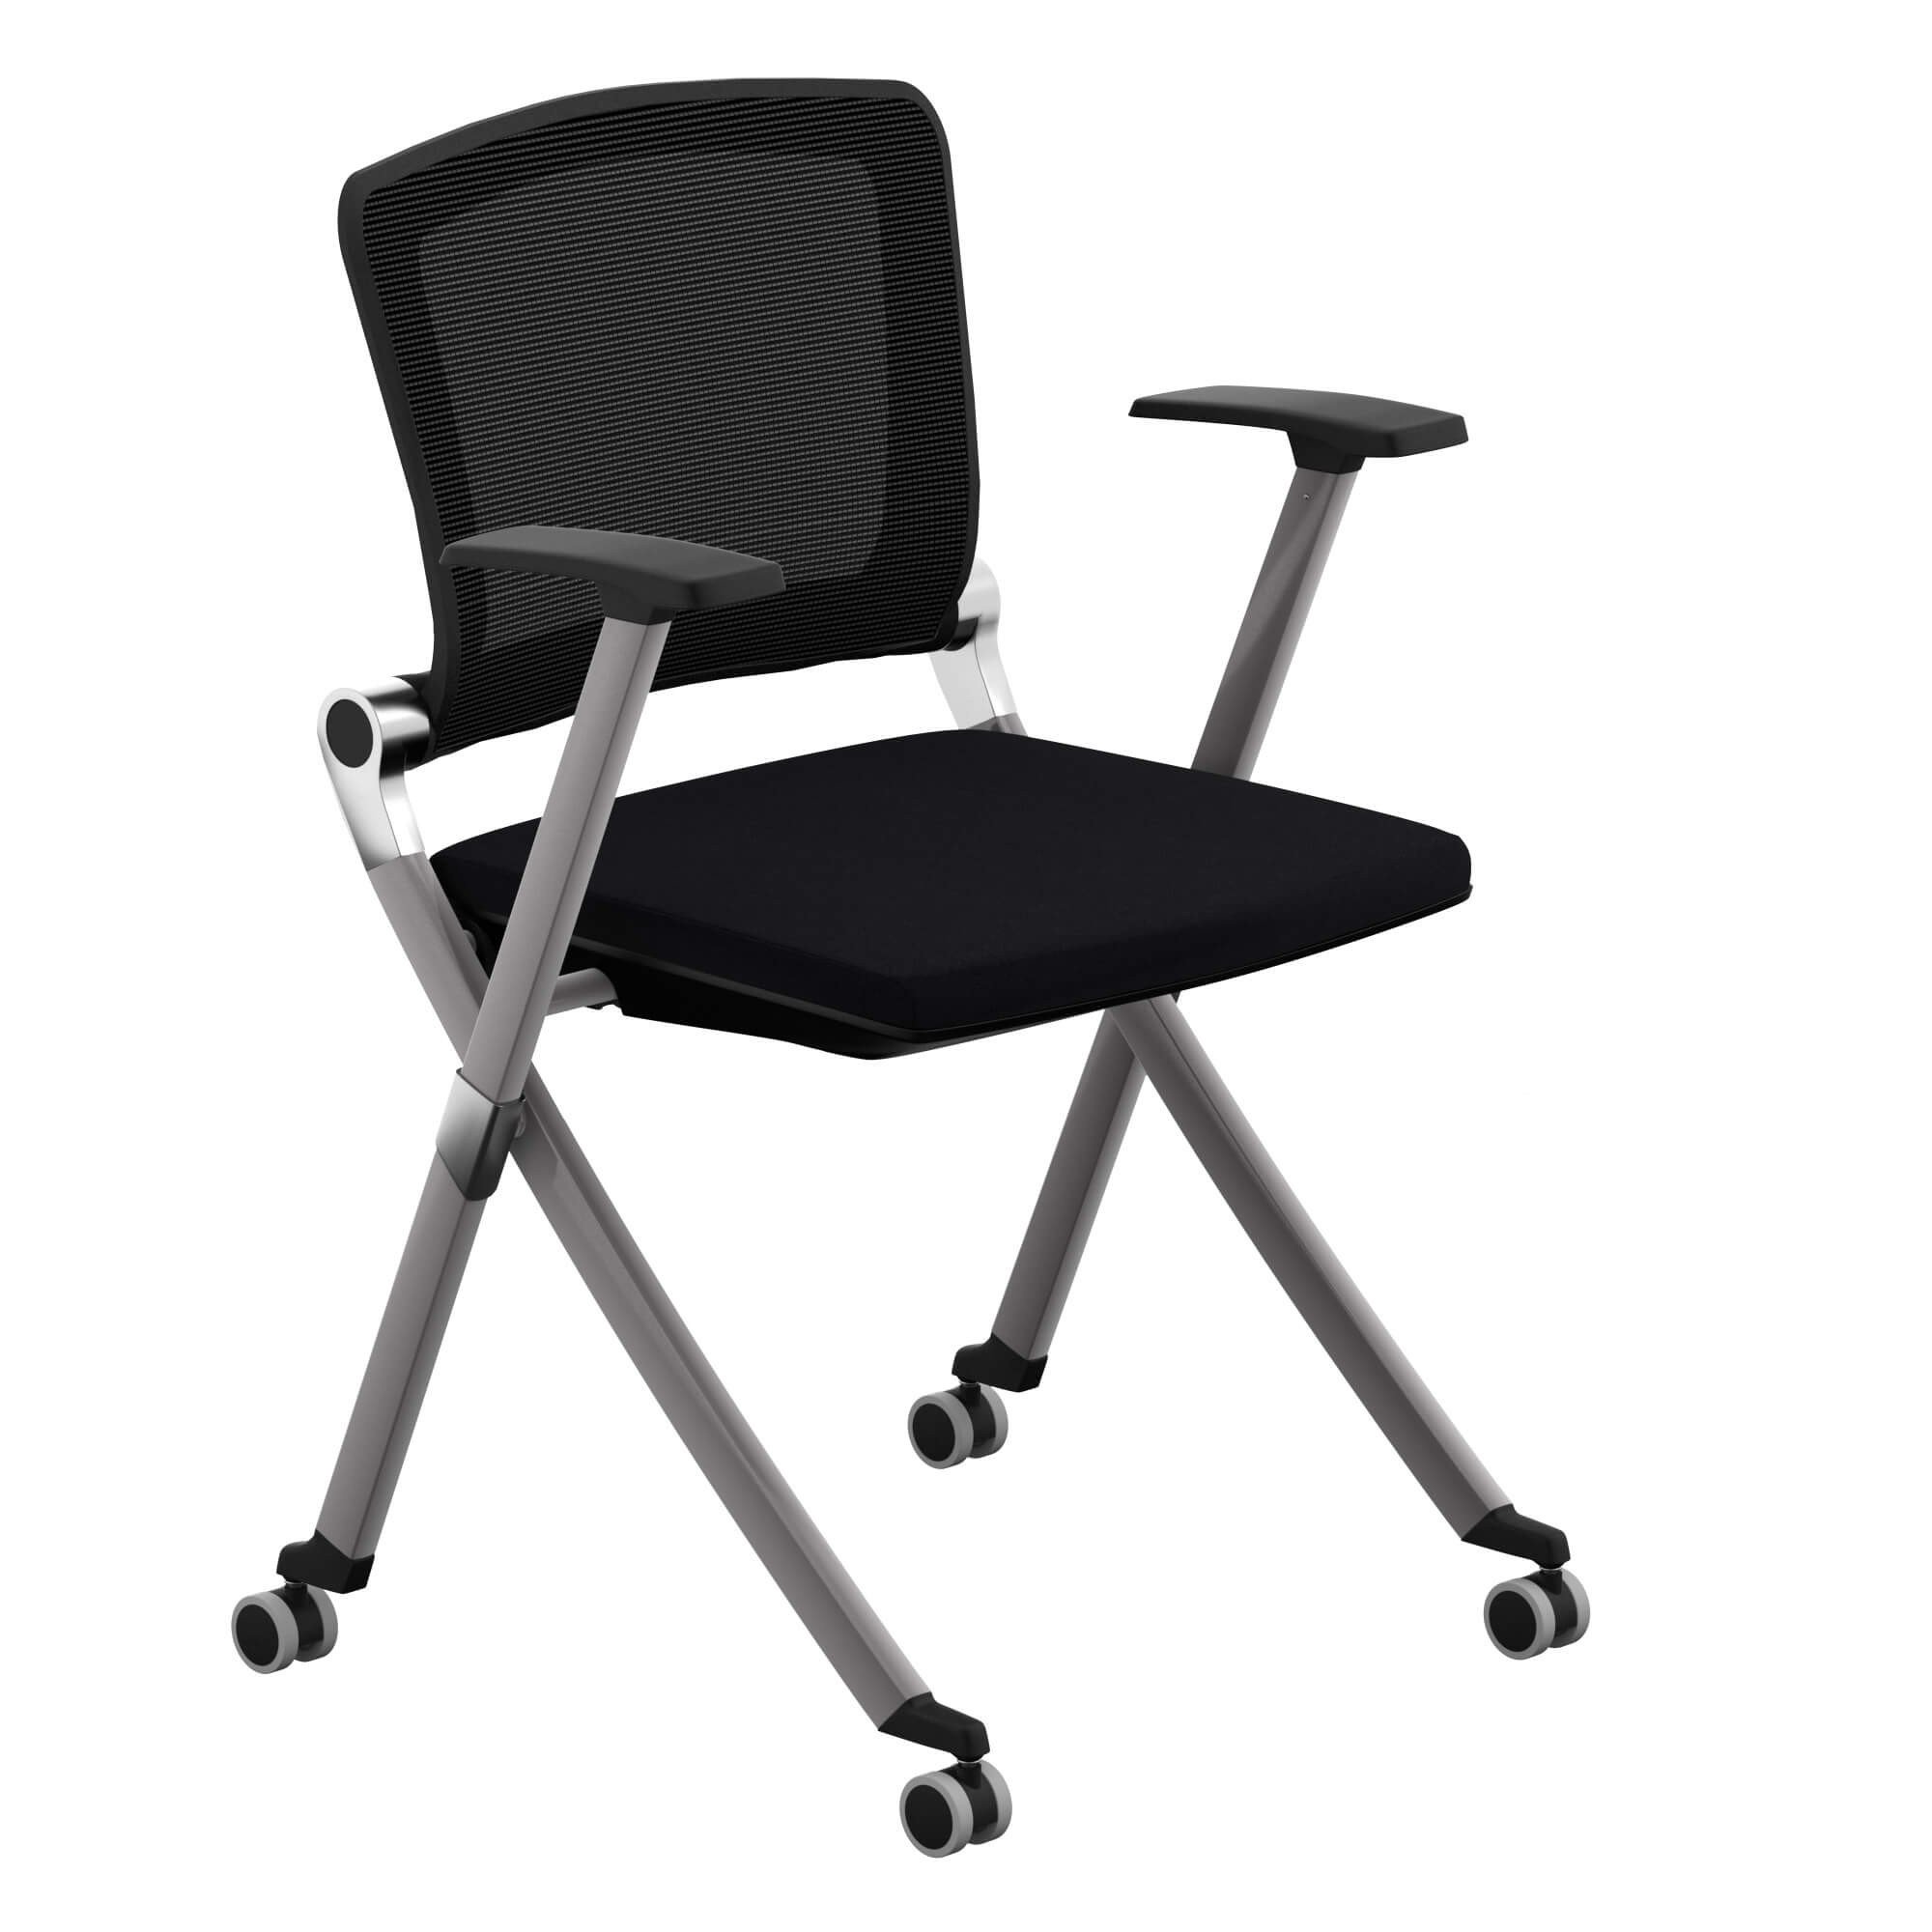 Office furniture chairs folding office chair 1